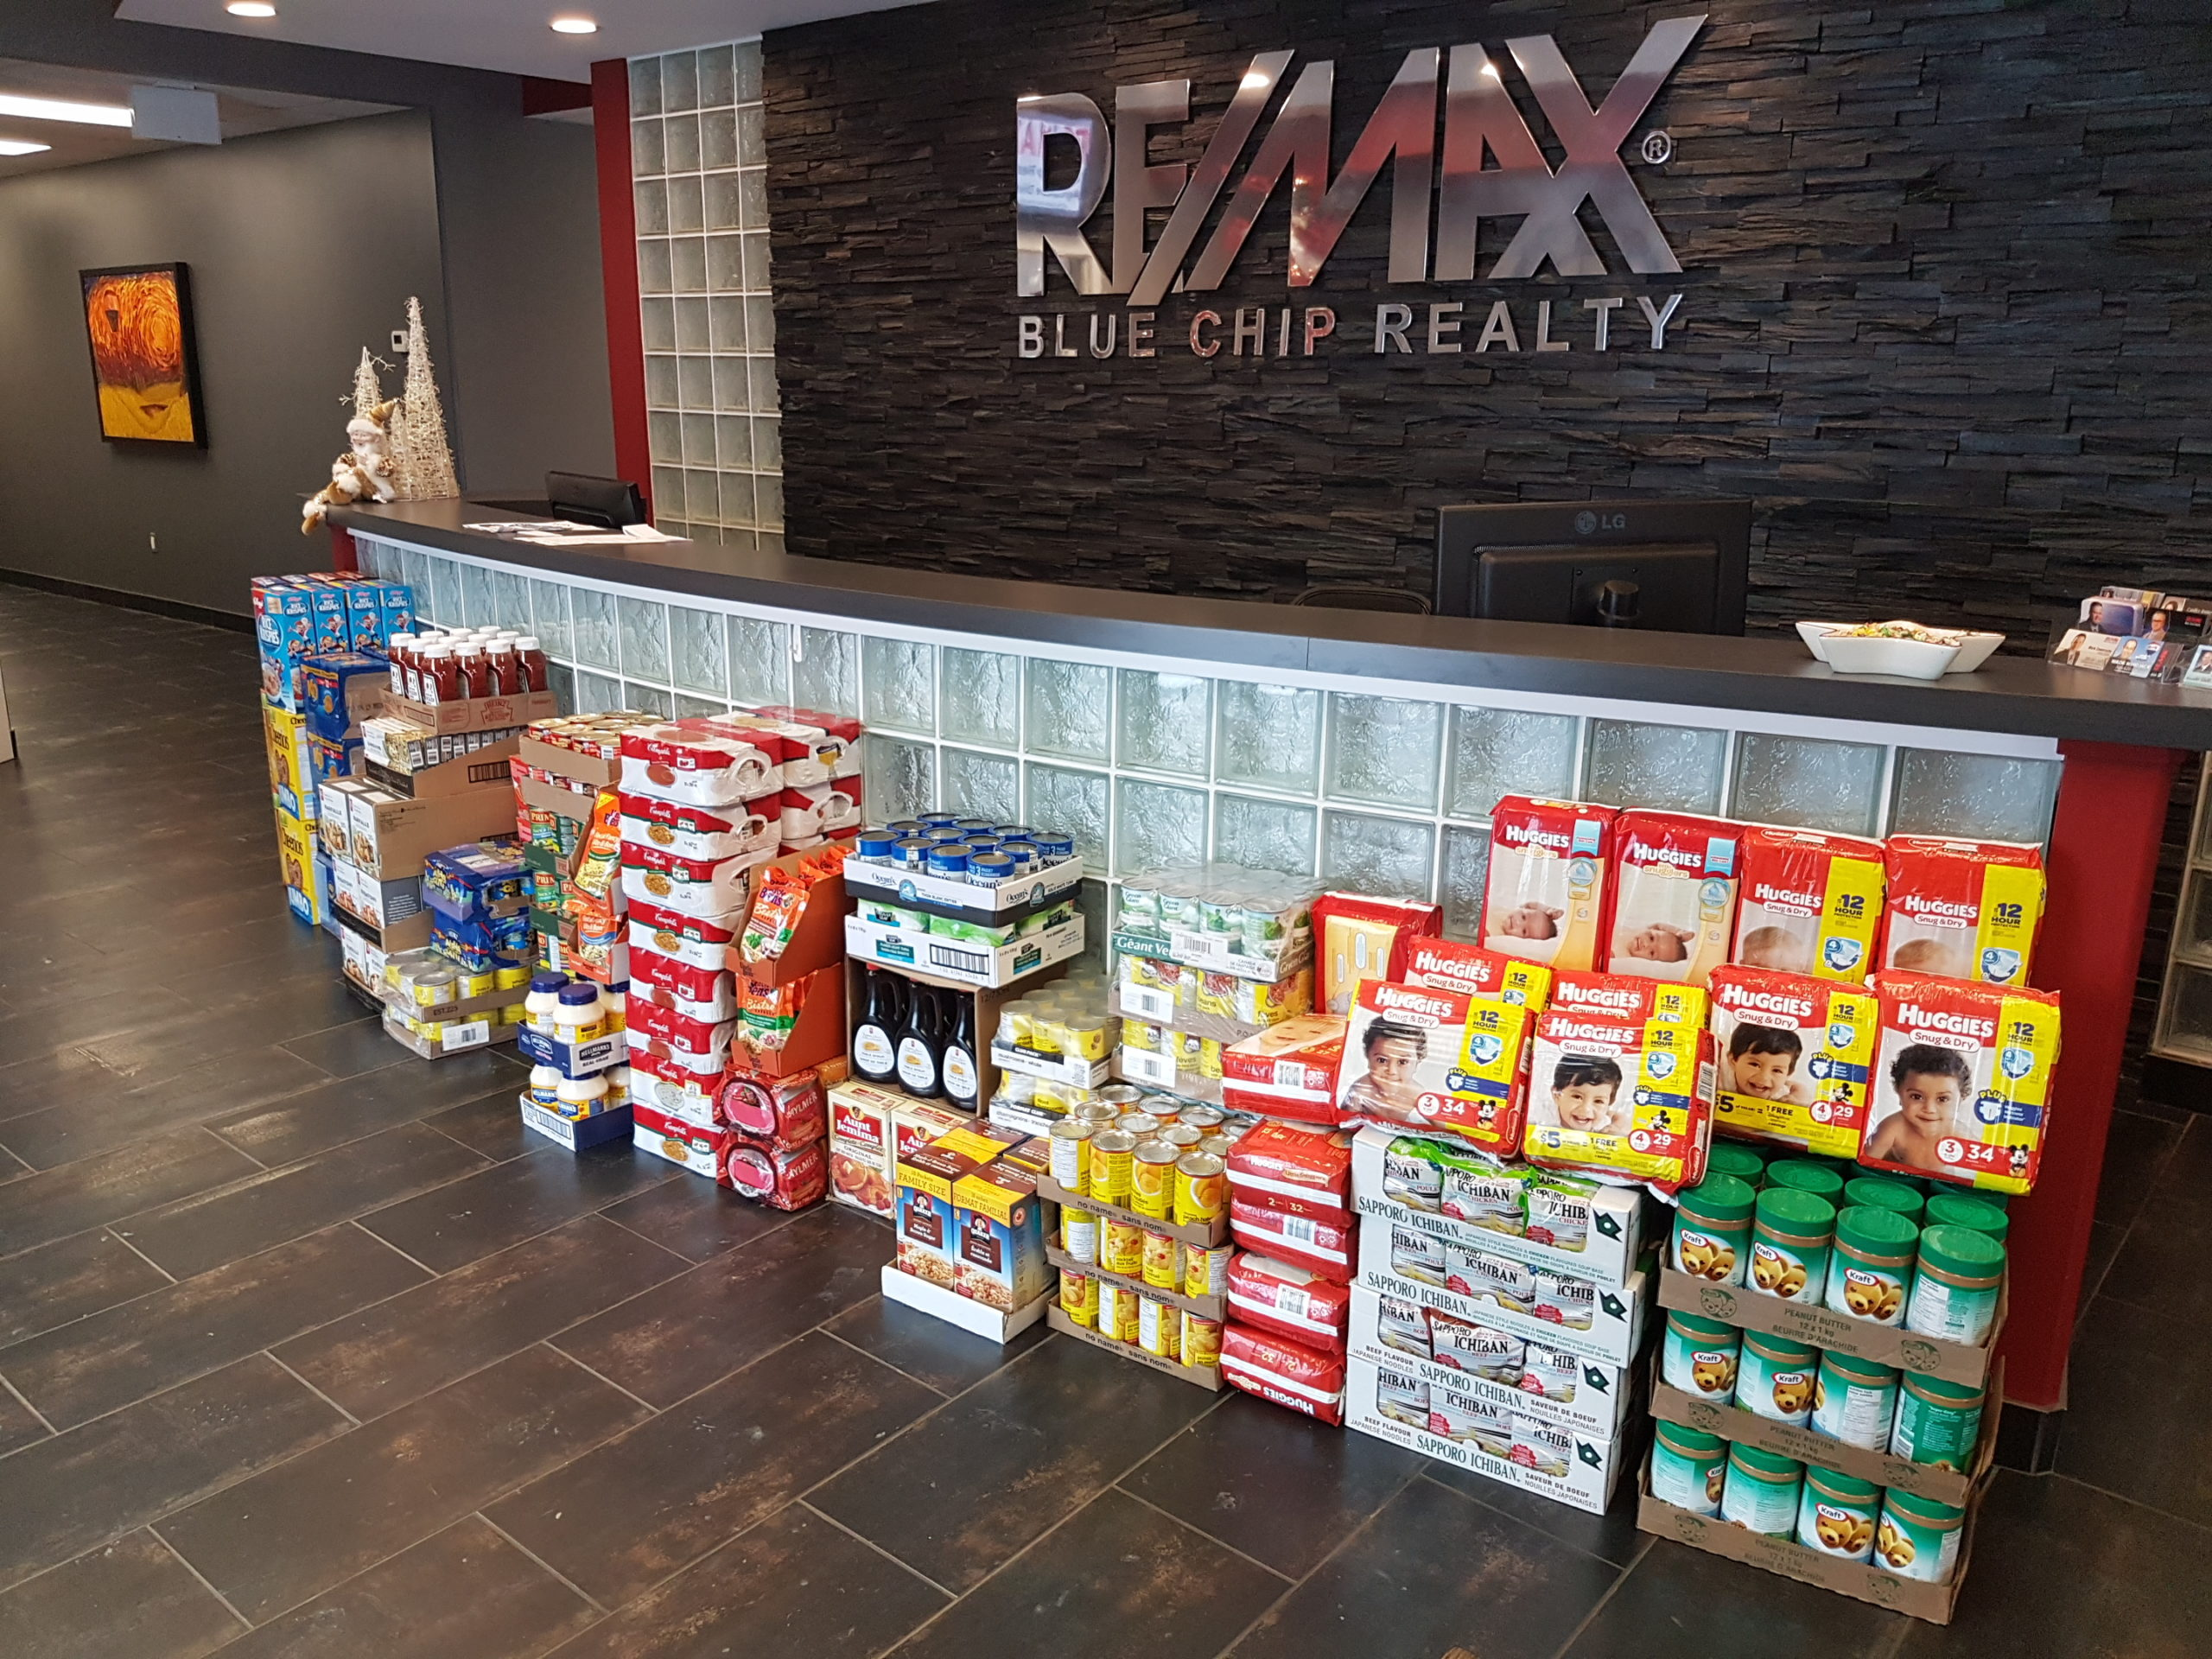 RE/MAX Blue Chip Realty in Yorkton Gives Salvation Army a Gracious Donation